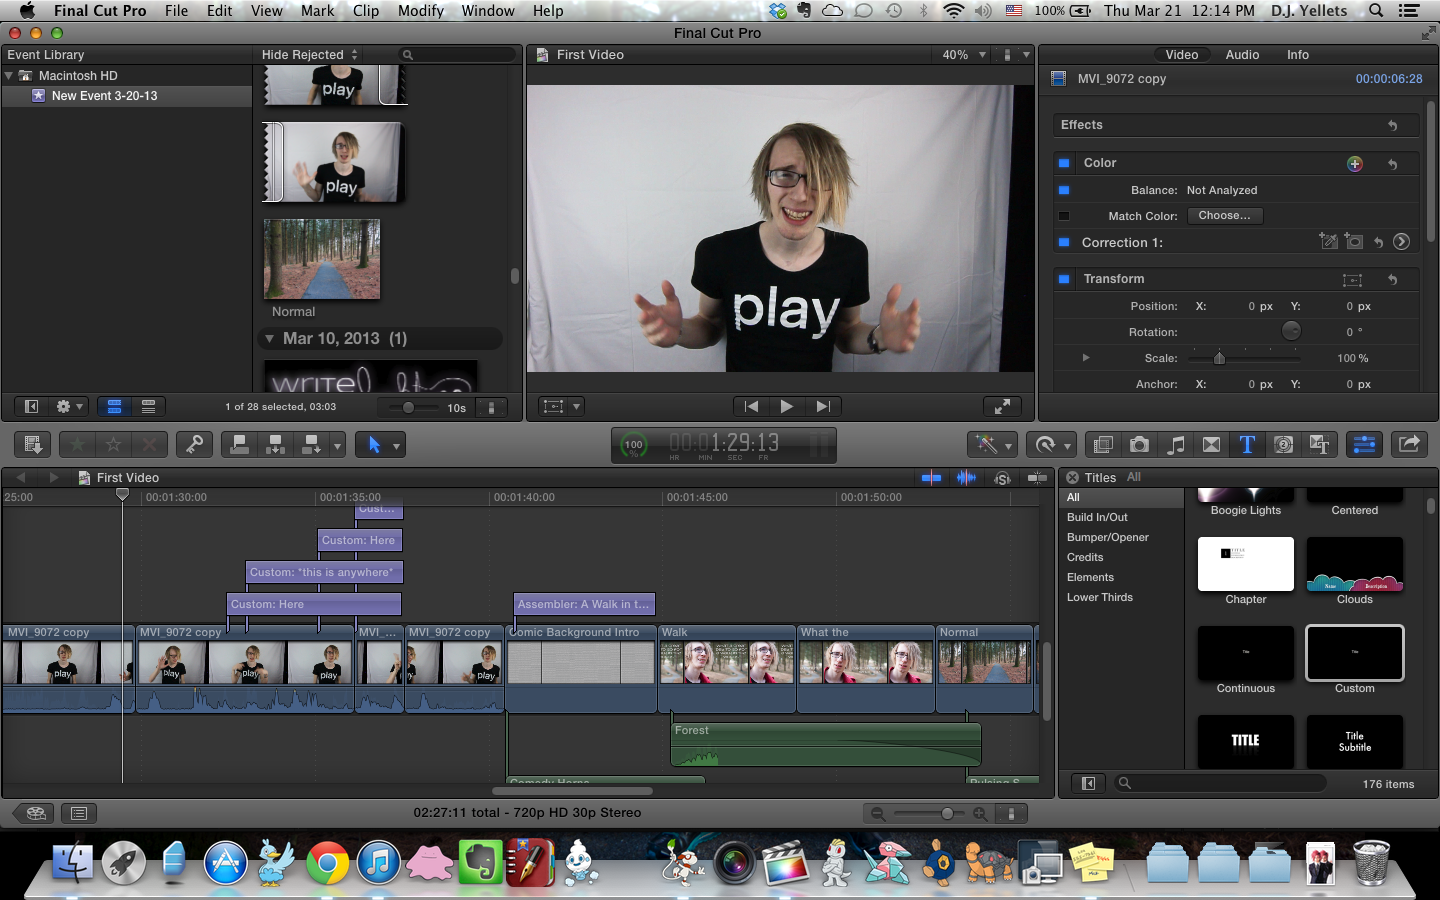 in the process of editing a video.